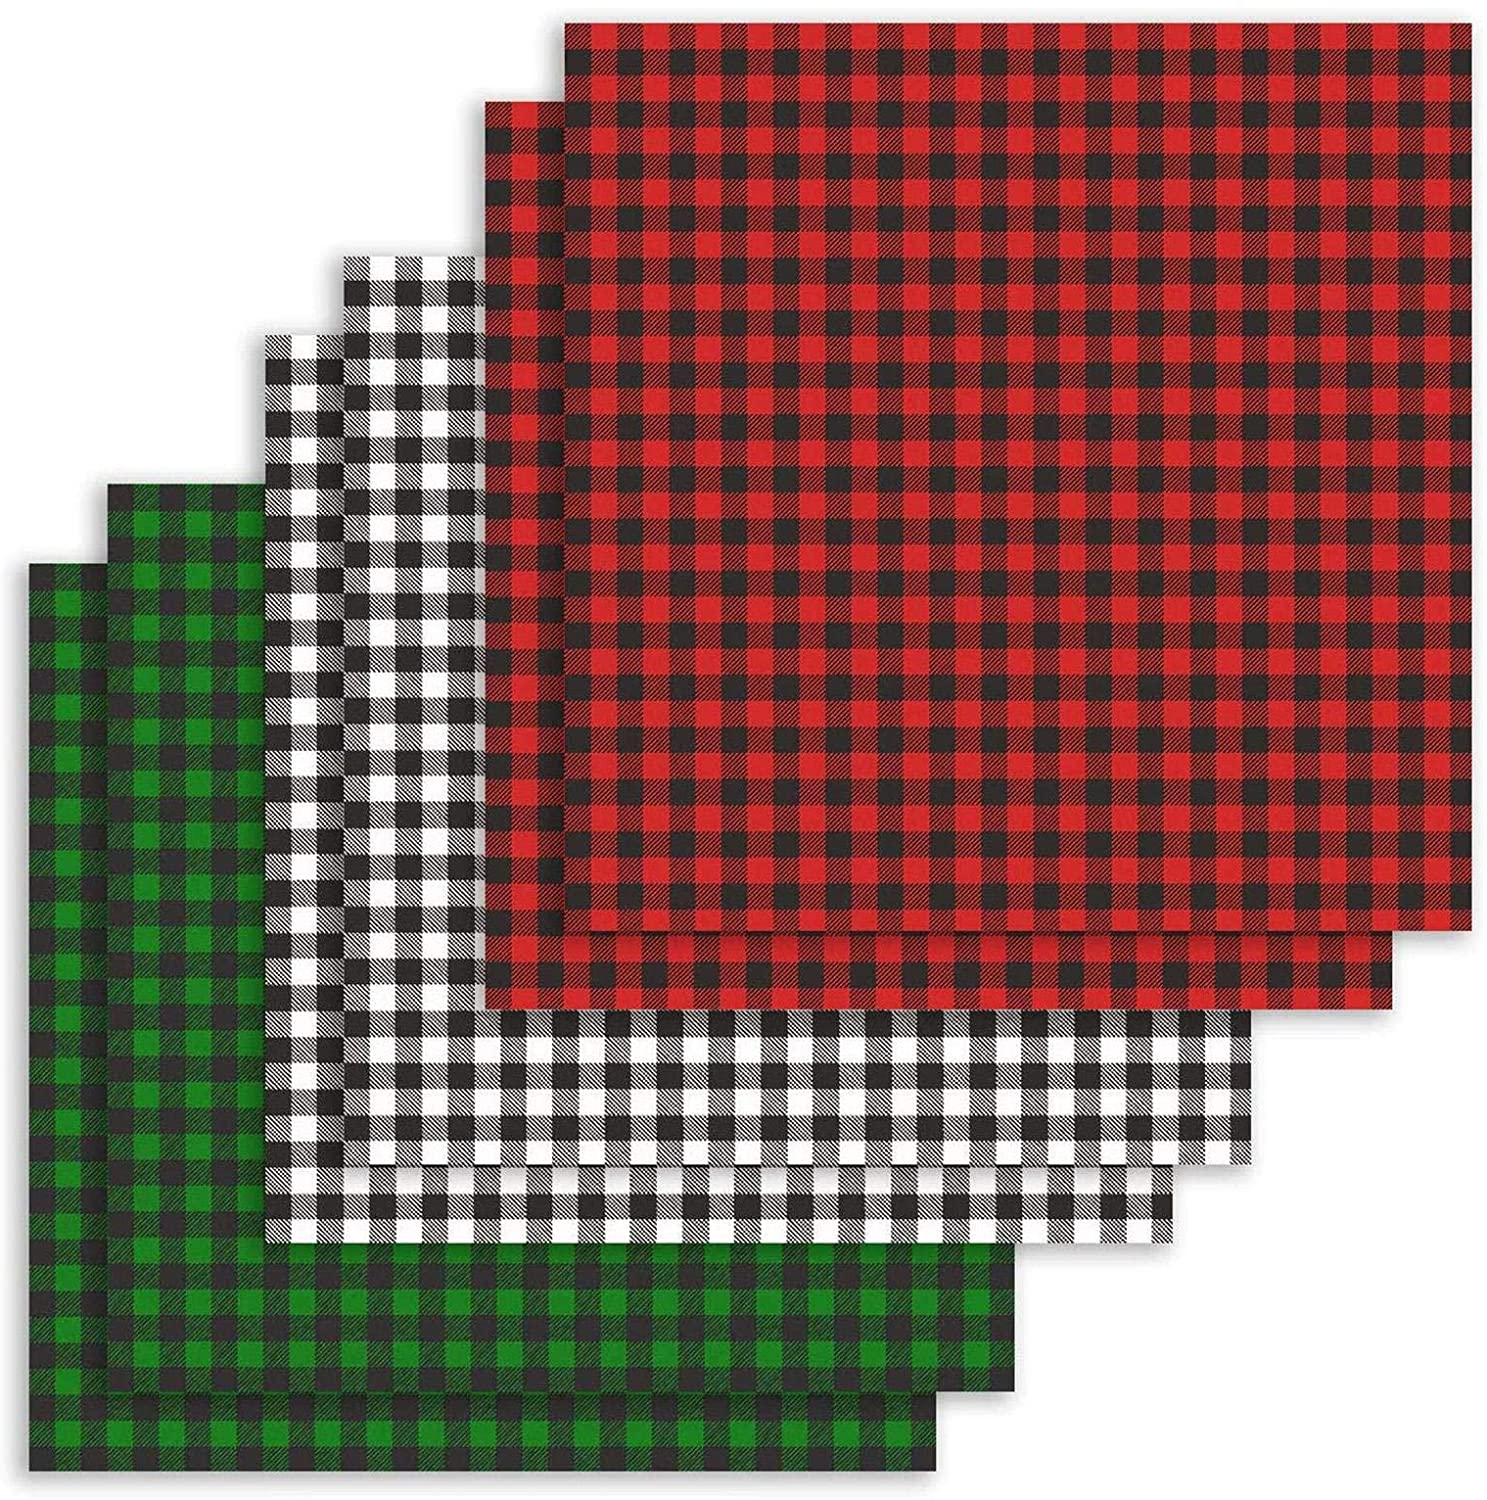 6pcs Christmas Cotton Fabric Squares, 18.5x18.5 Inch Squares Black White Red Green Plaid Quilting Fabric Patchwork, DIY Sewing Scrapbooking Crafts Fabric for Festival Decorations